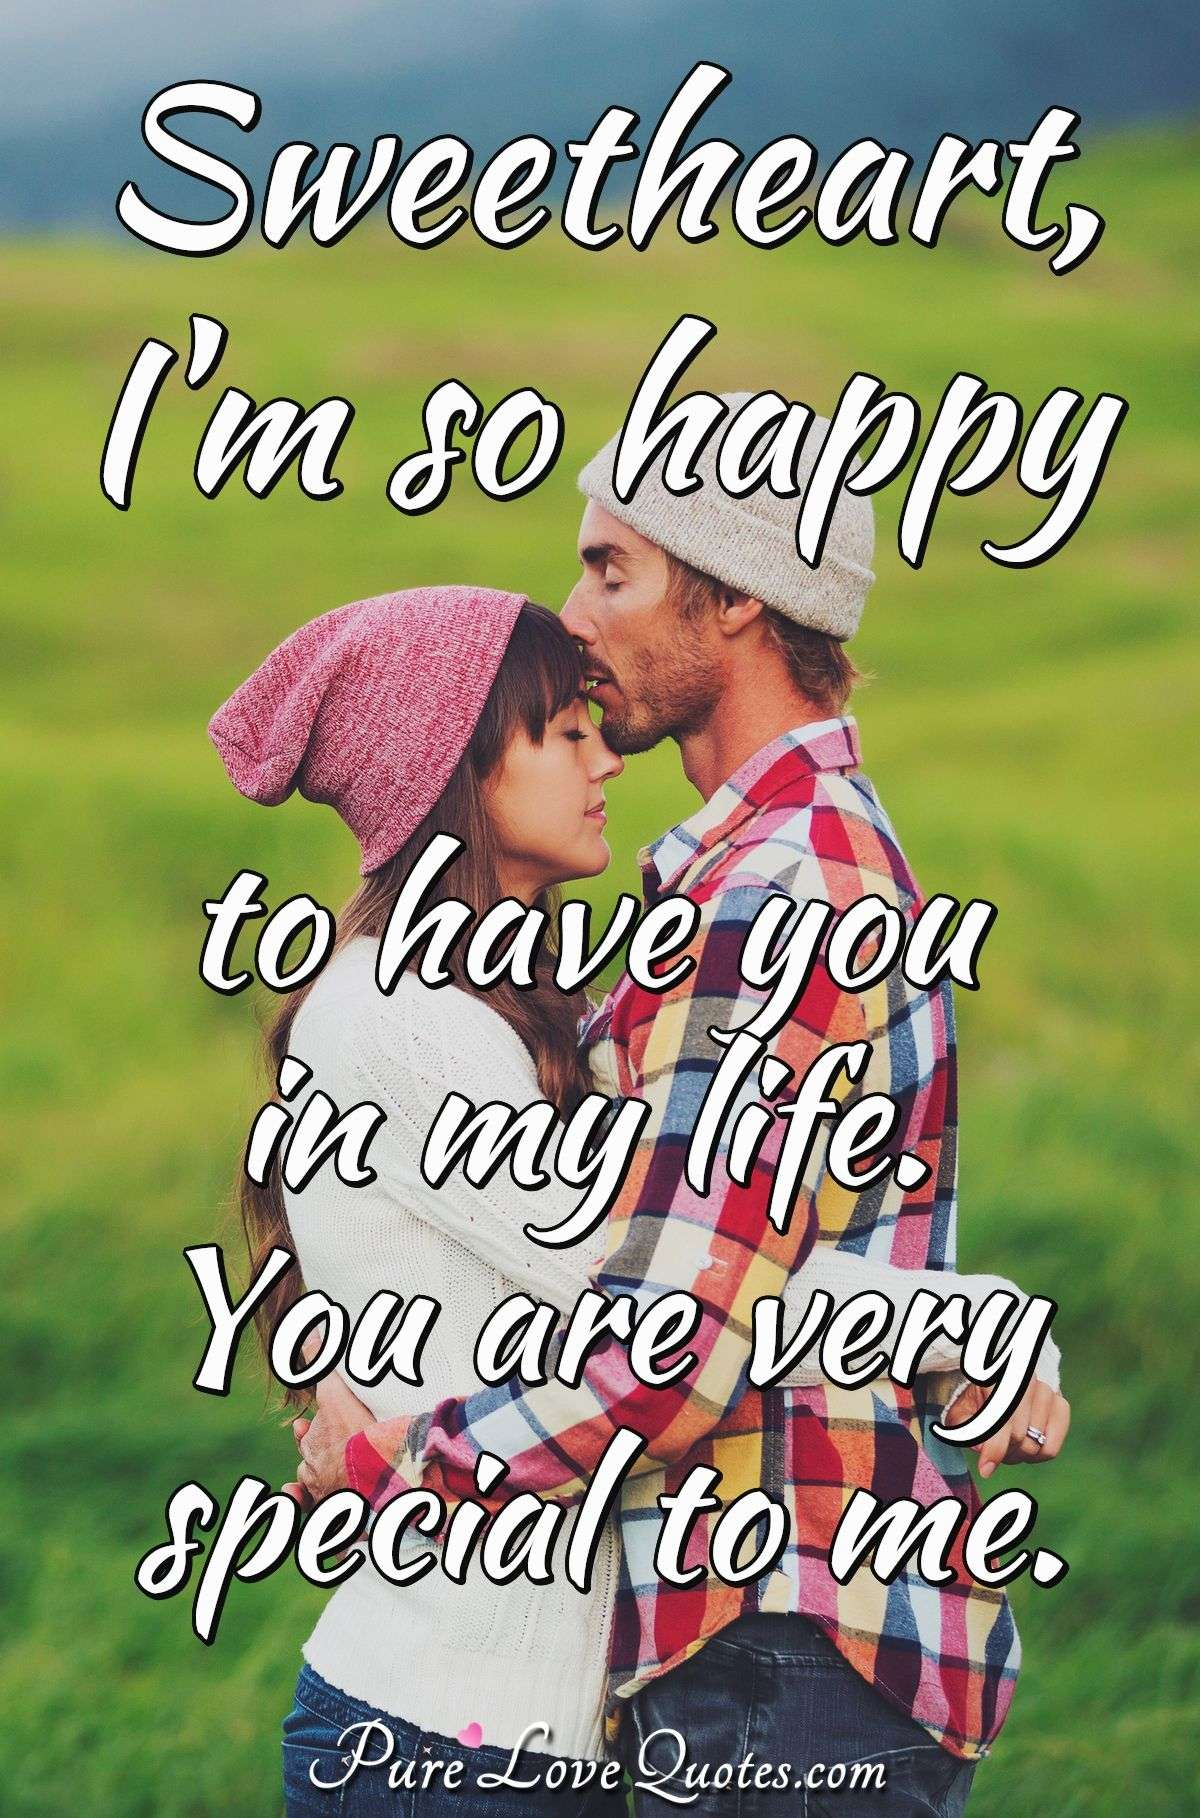 Sweetheart I M So Happy To Have You In My Life You Are Very Special To Me Purelovequotes